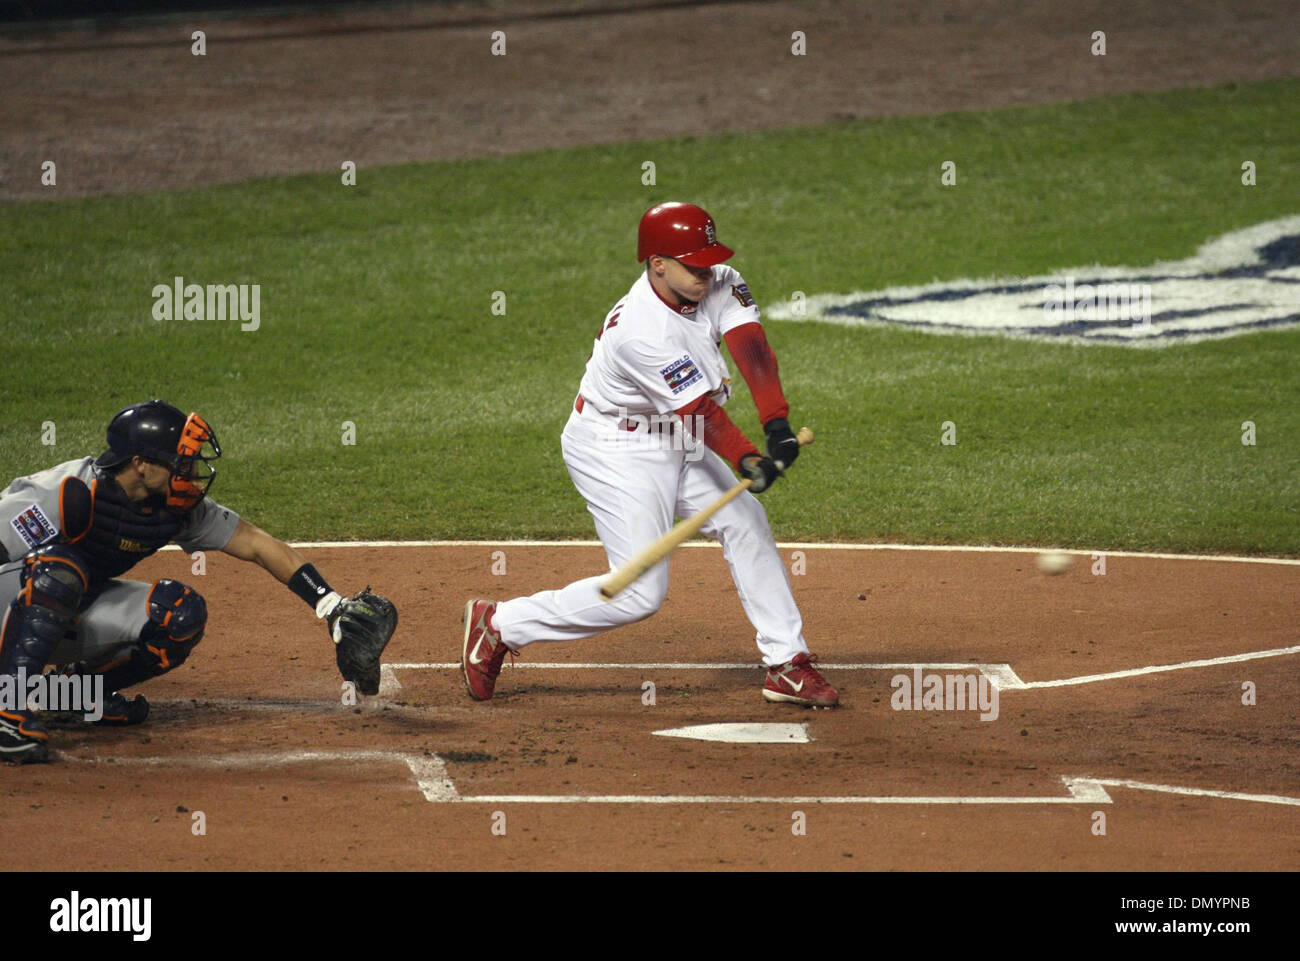 Oct 26 2006 St Louis MO USA Cardinal DAVID ECKSTEIN Hits A Single And Is Safe At First In The Inning Game 4 Of World Series Busch